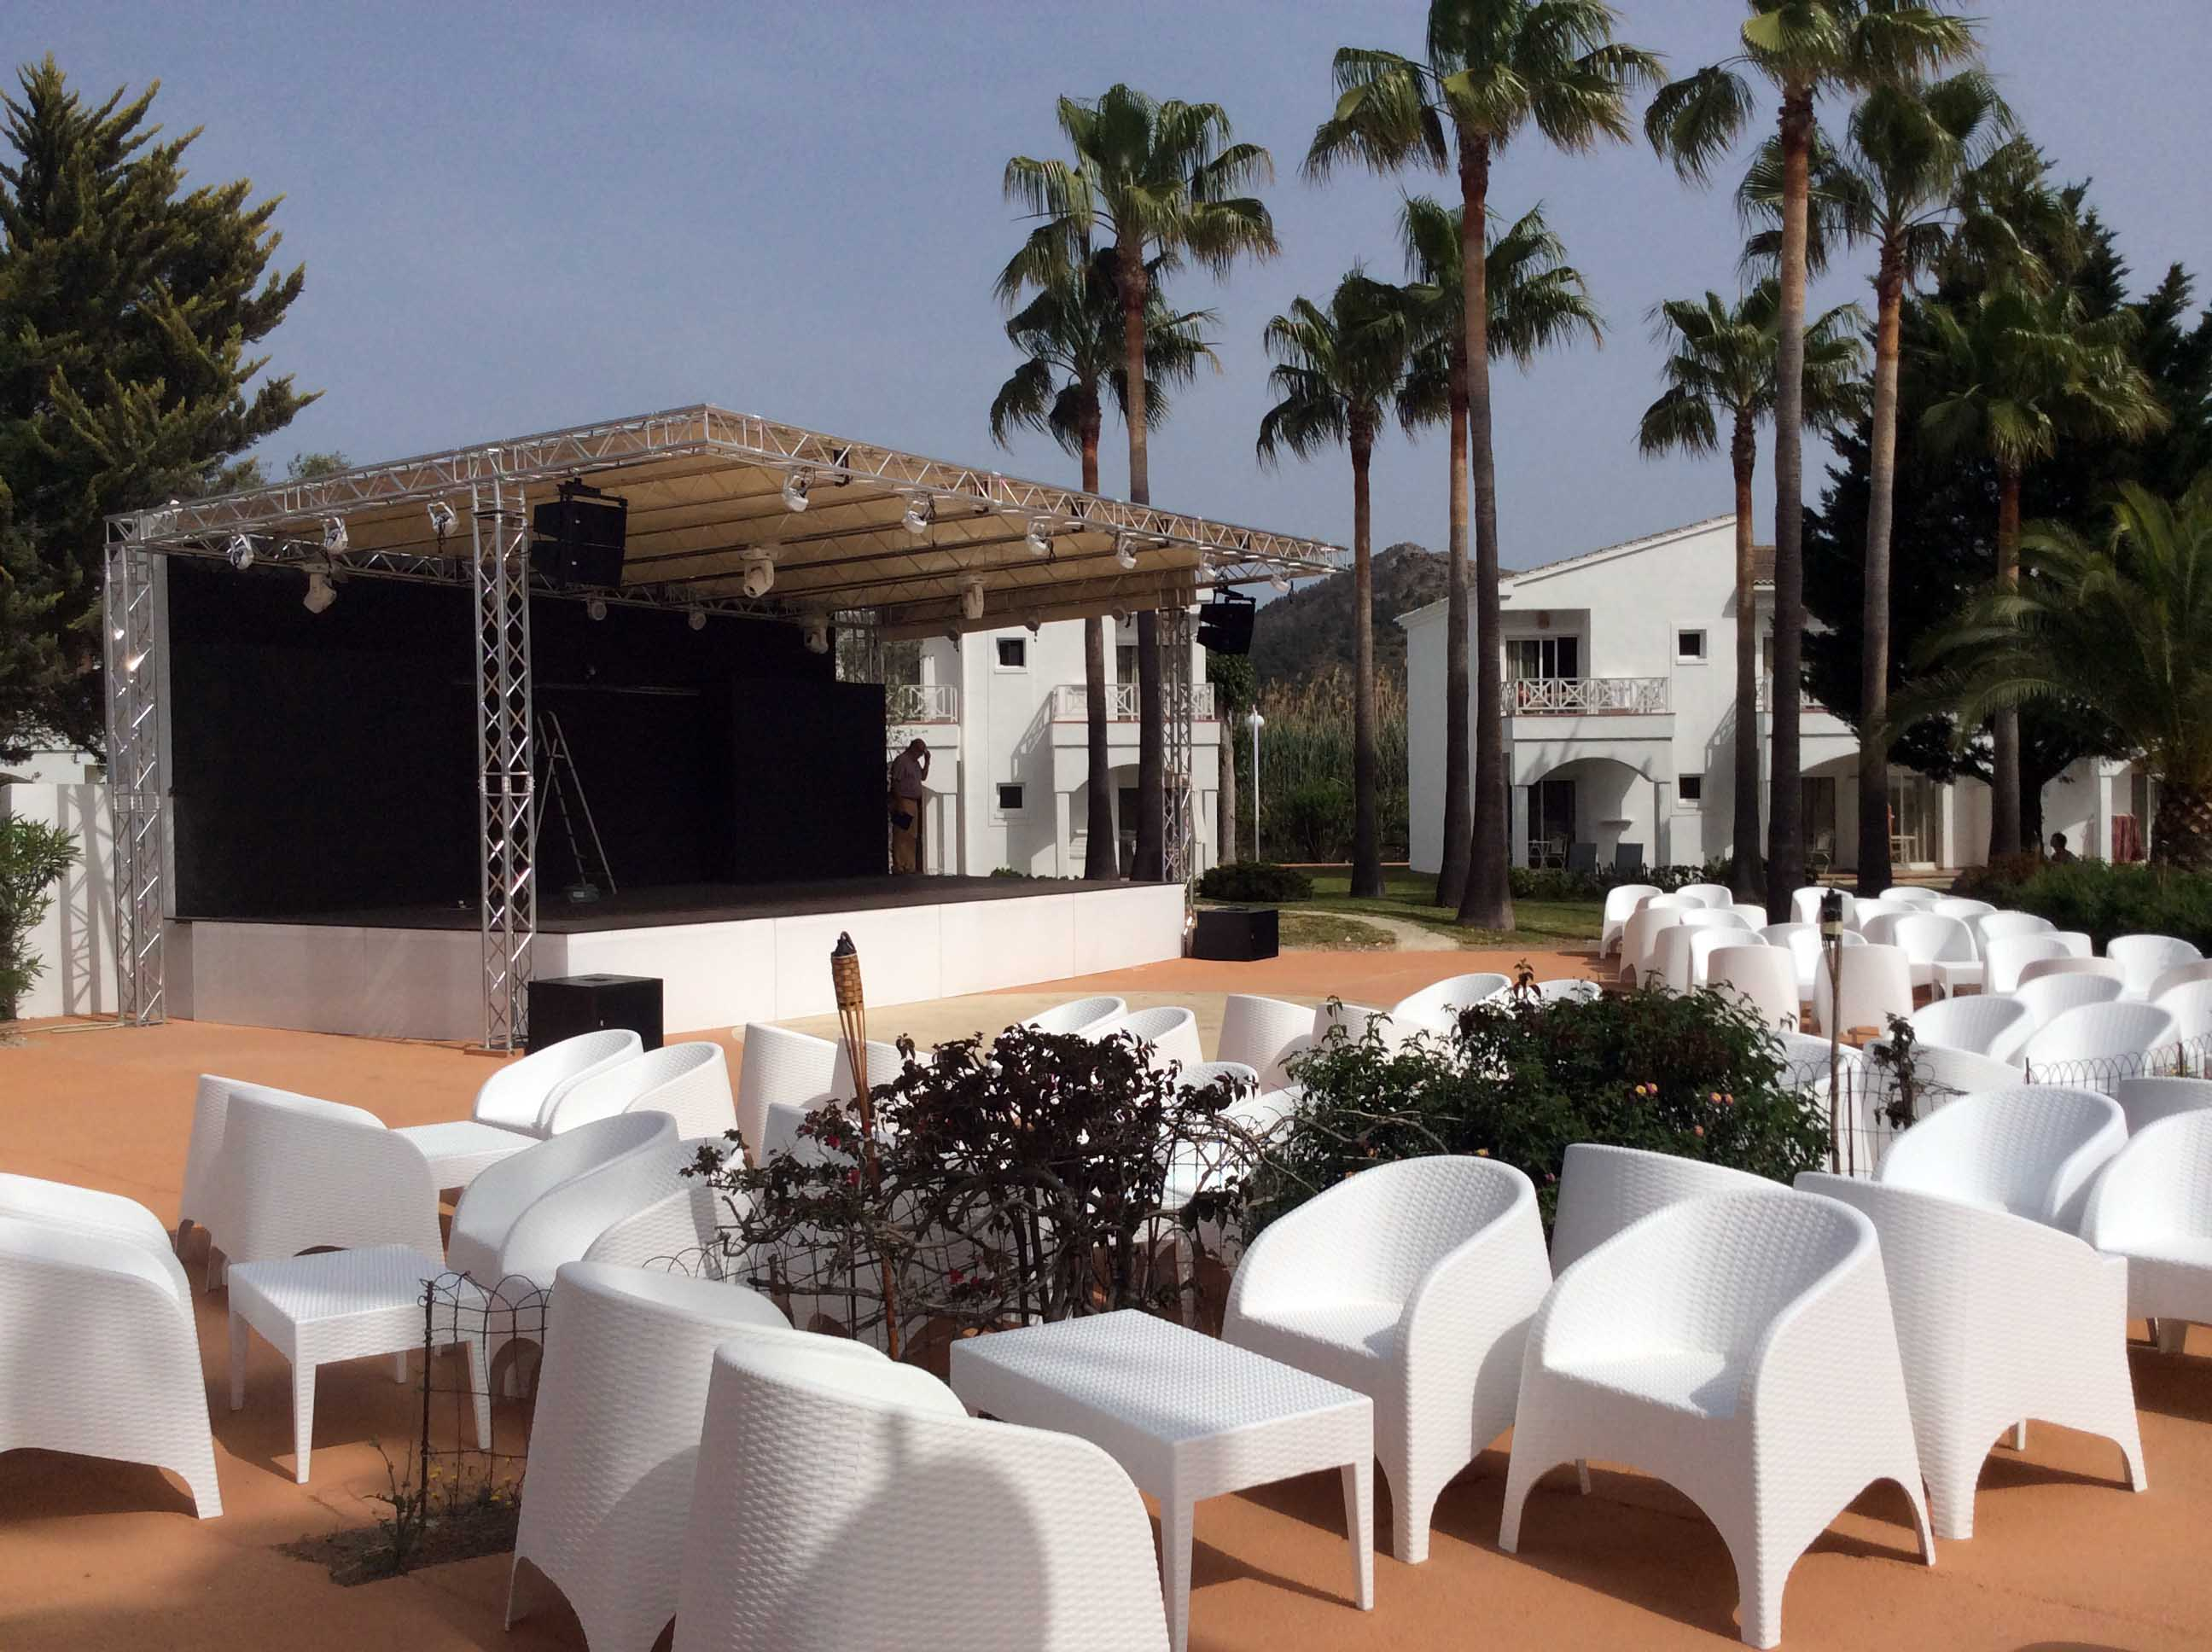 Stage with roof @ (Spain)